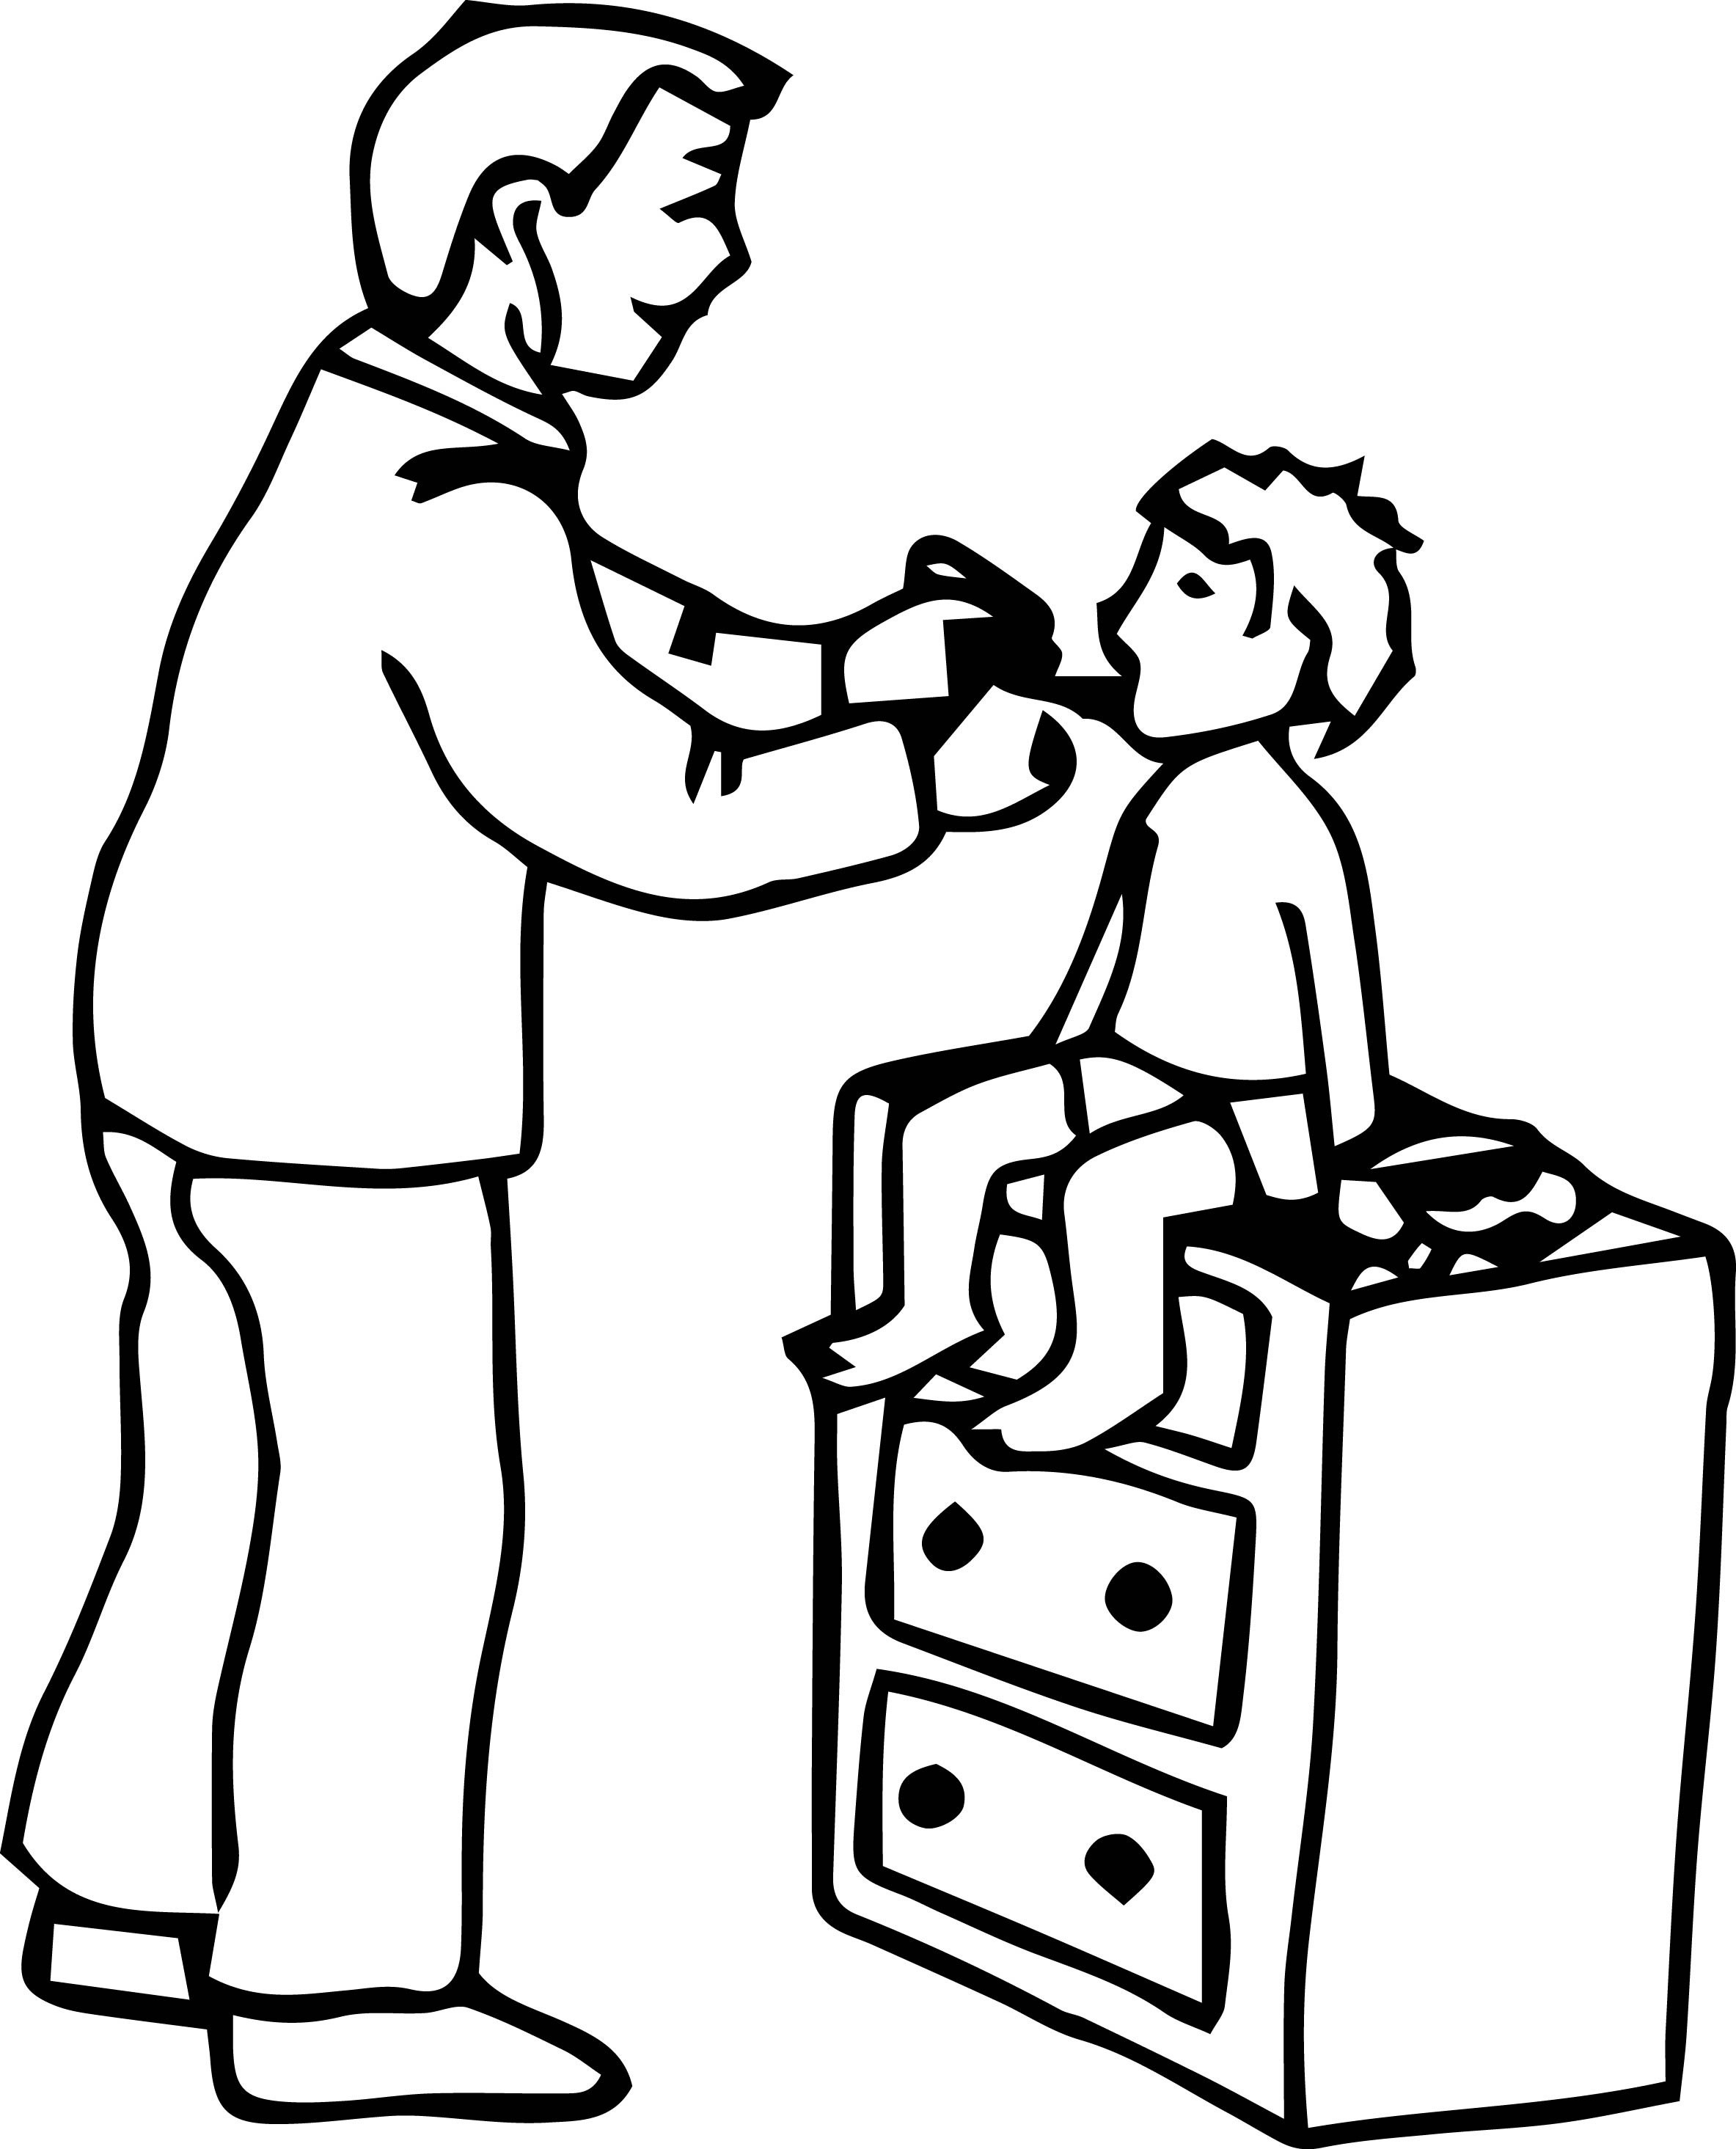 Doctor and kid clipart black and white vector black and white download Kid doctor clipart black and white 7 » Clipart Portal vector black and white download